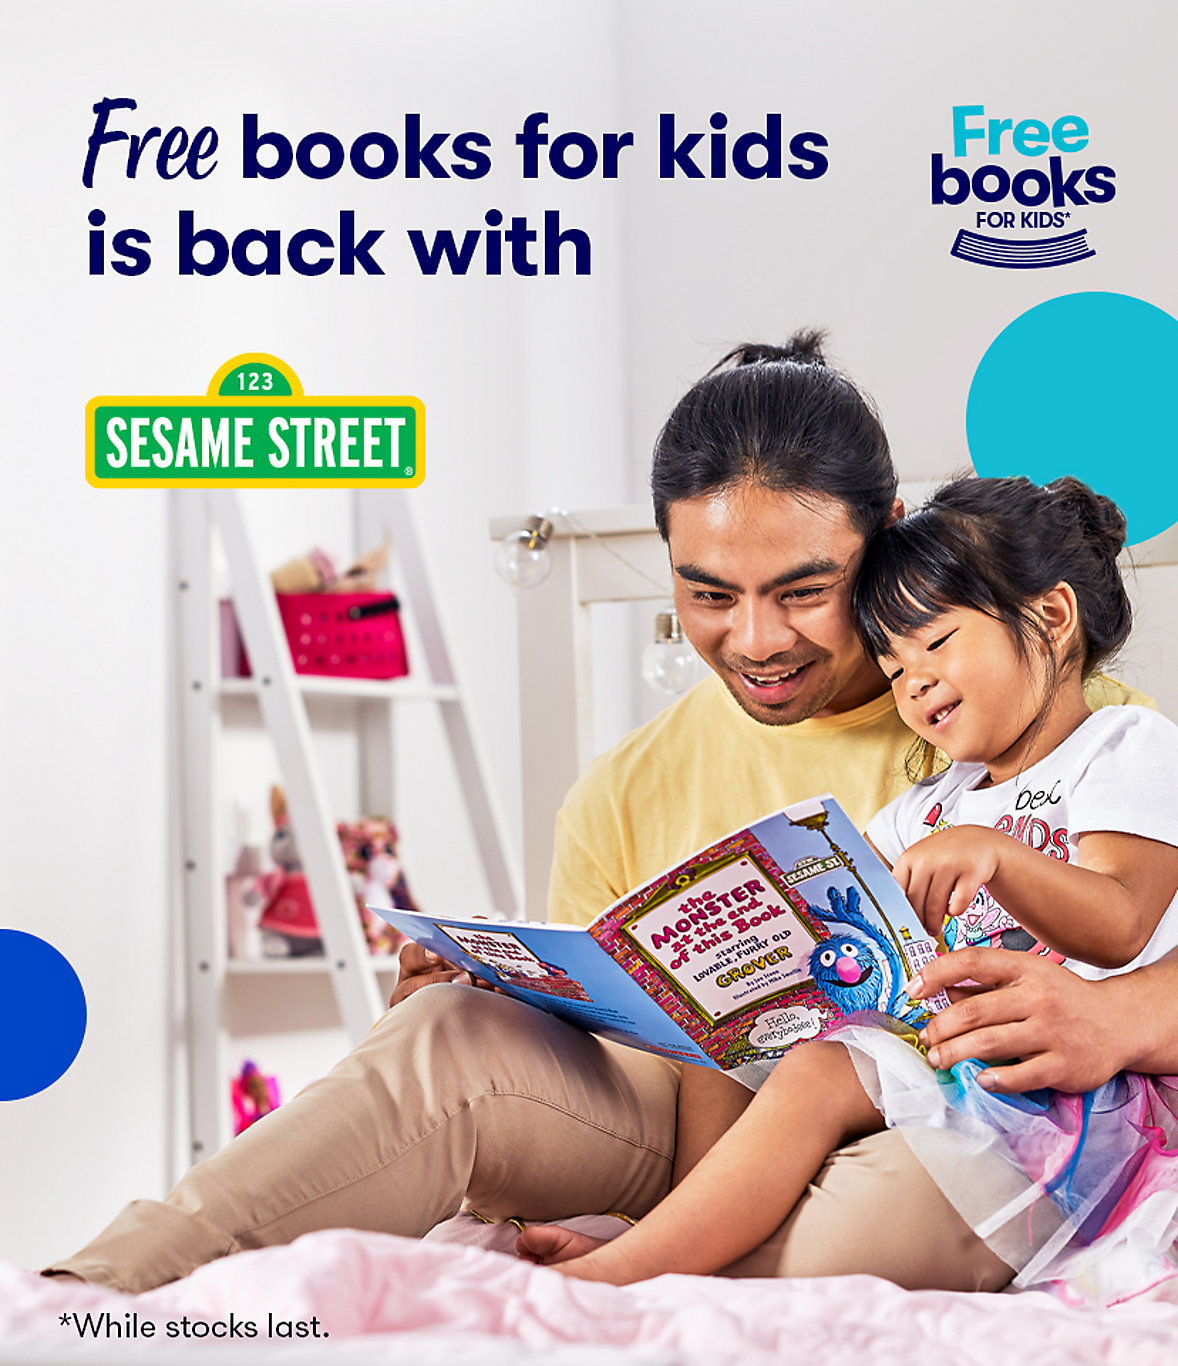 Free books for kids is back